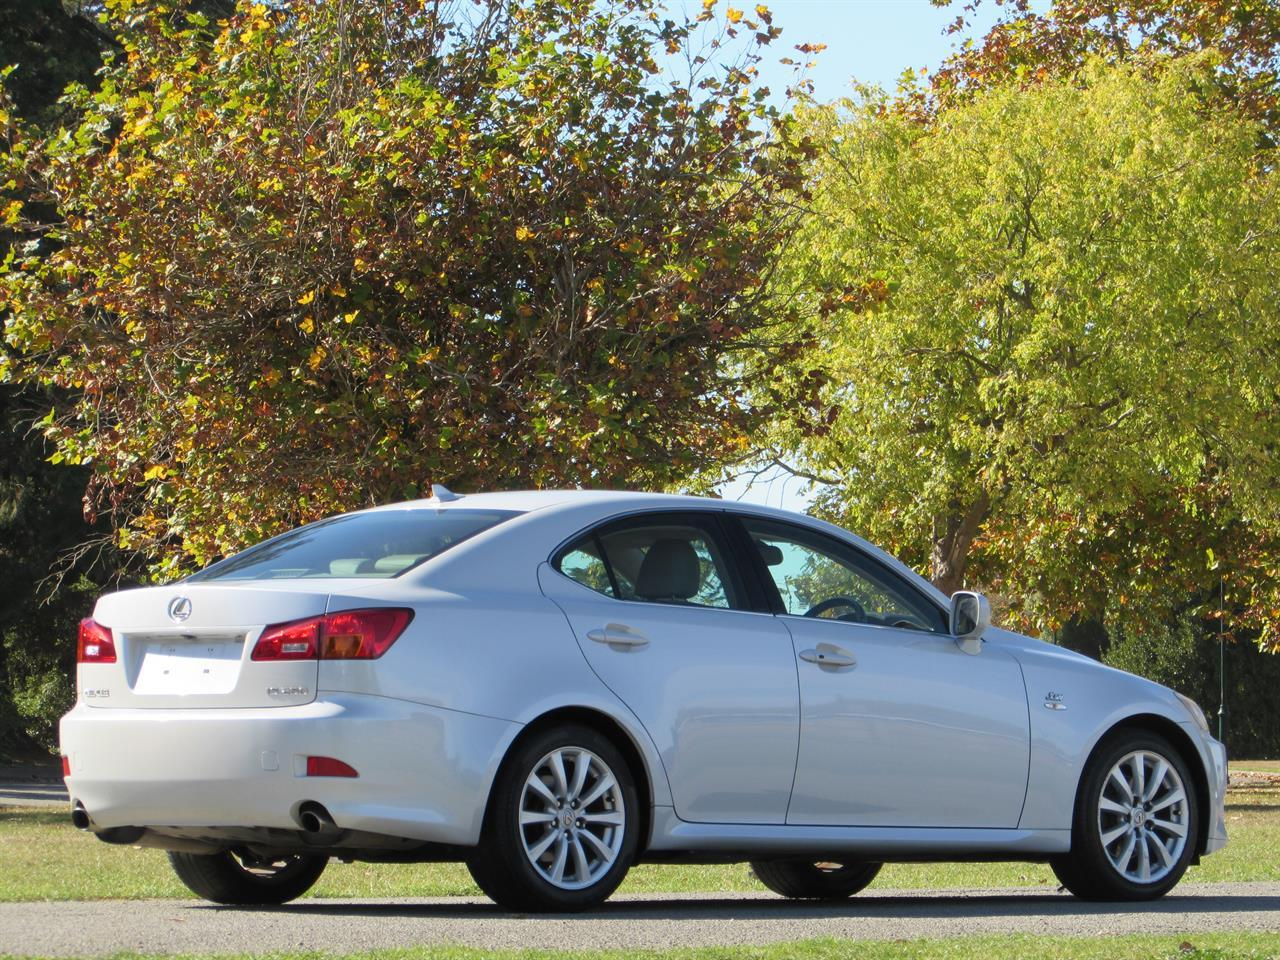 image-6, 2007 Lexus IS 250 at Christchurch